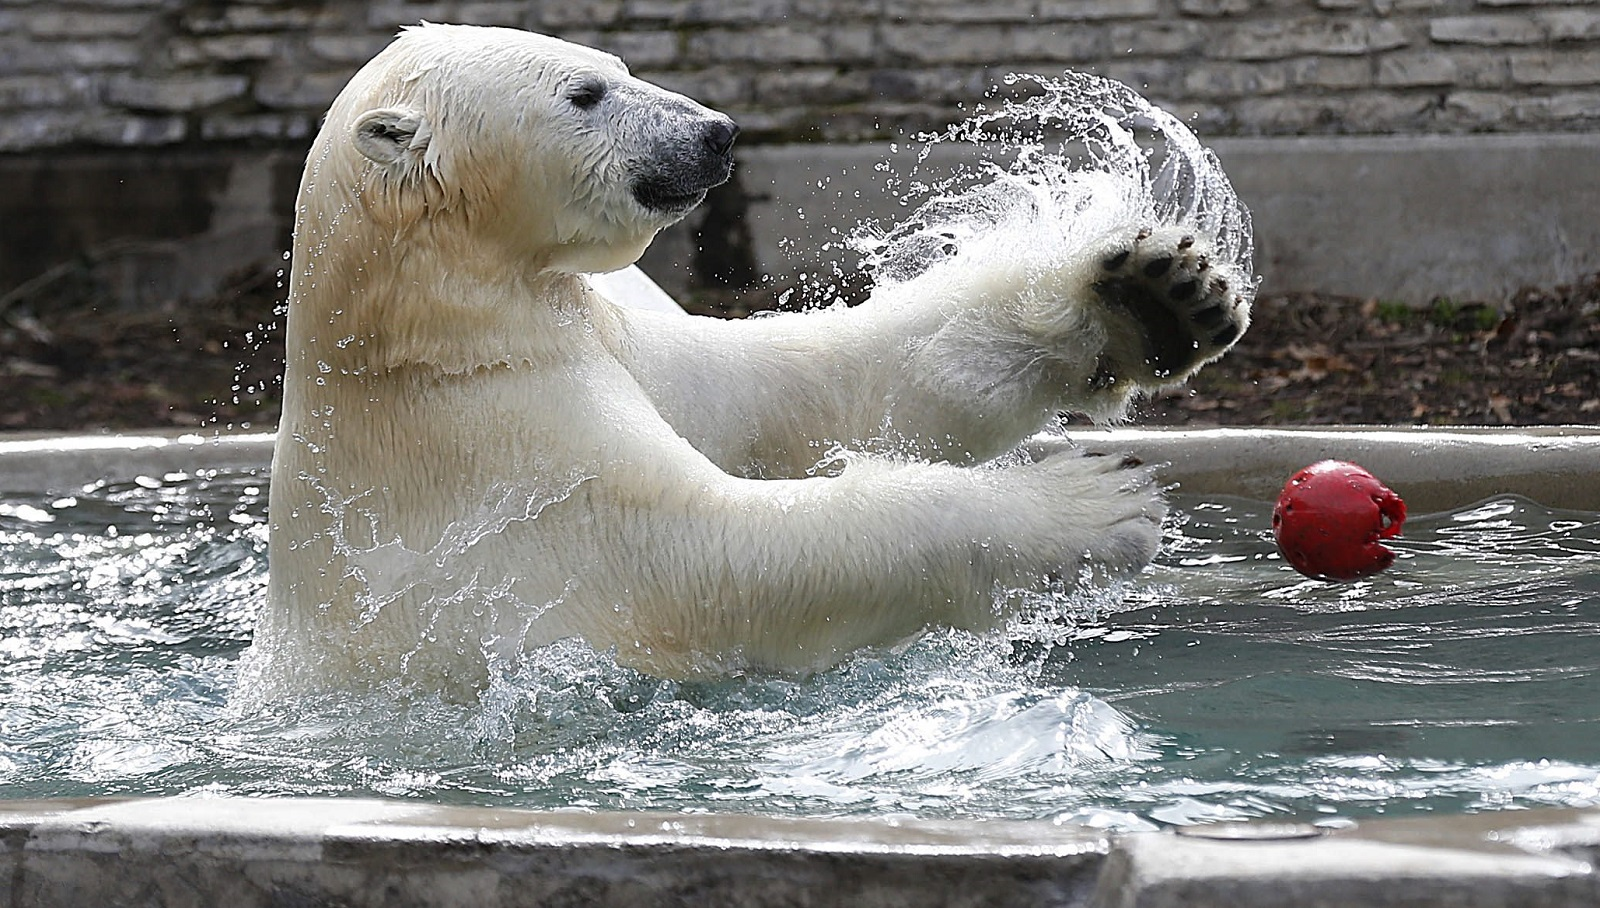 Former Buffalo Zoo resident Kali shows off his agility and intelligence at the St. Louis Zoo. Here, he's pictured playing with his favorite ball on April 14, 2015, in Buffalo. (Robert Kirkham/Buffalo News file photo)